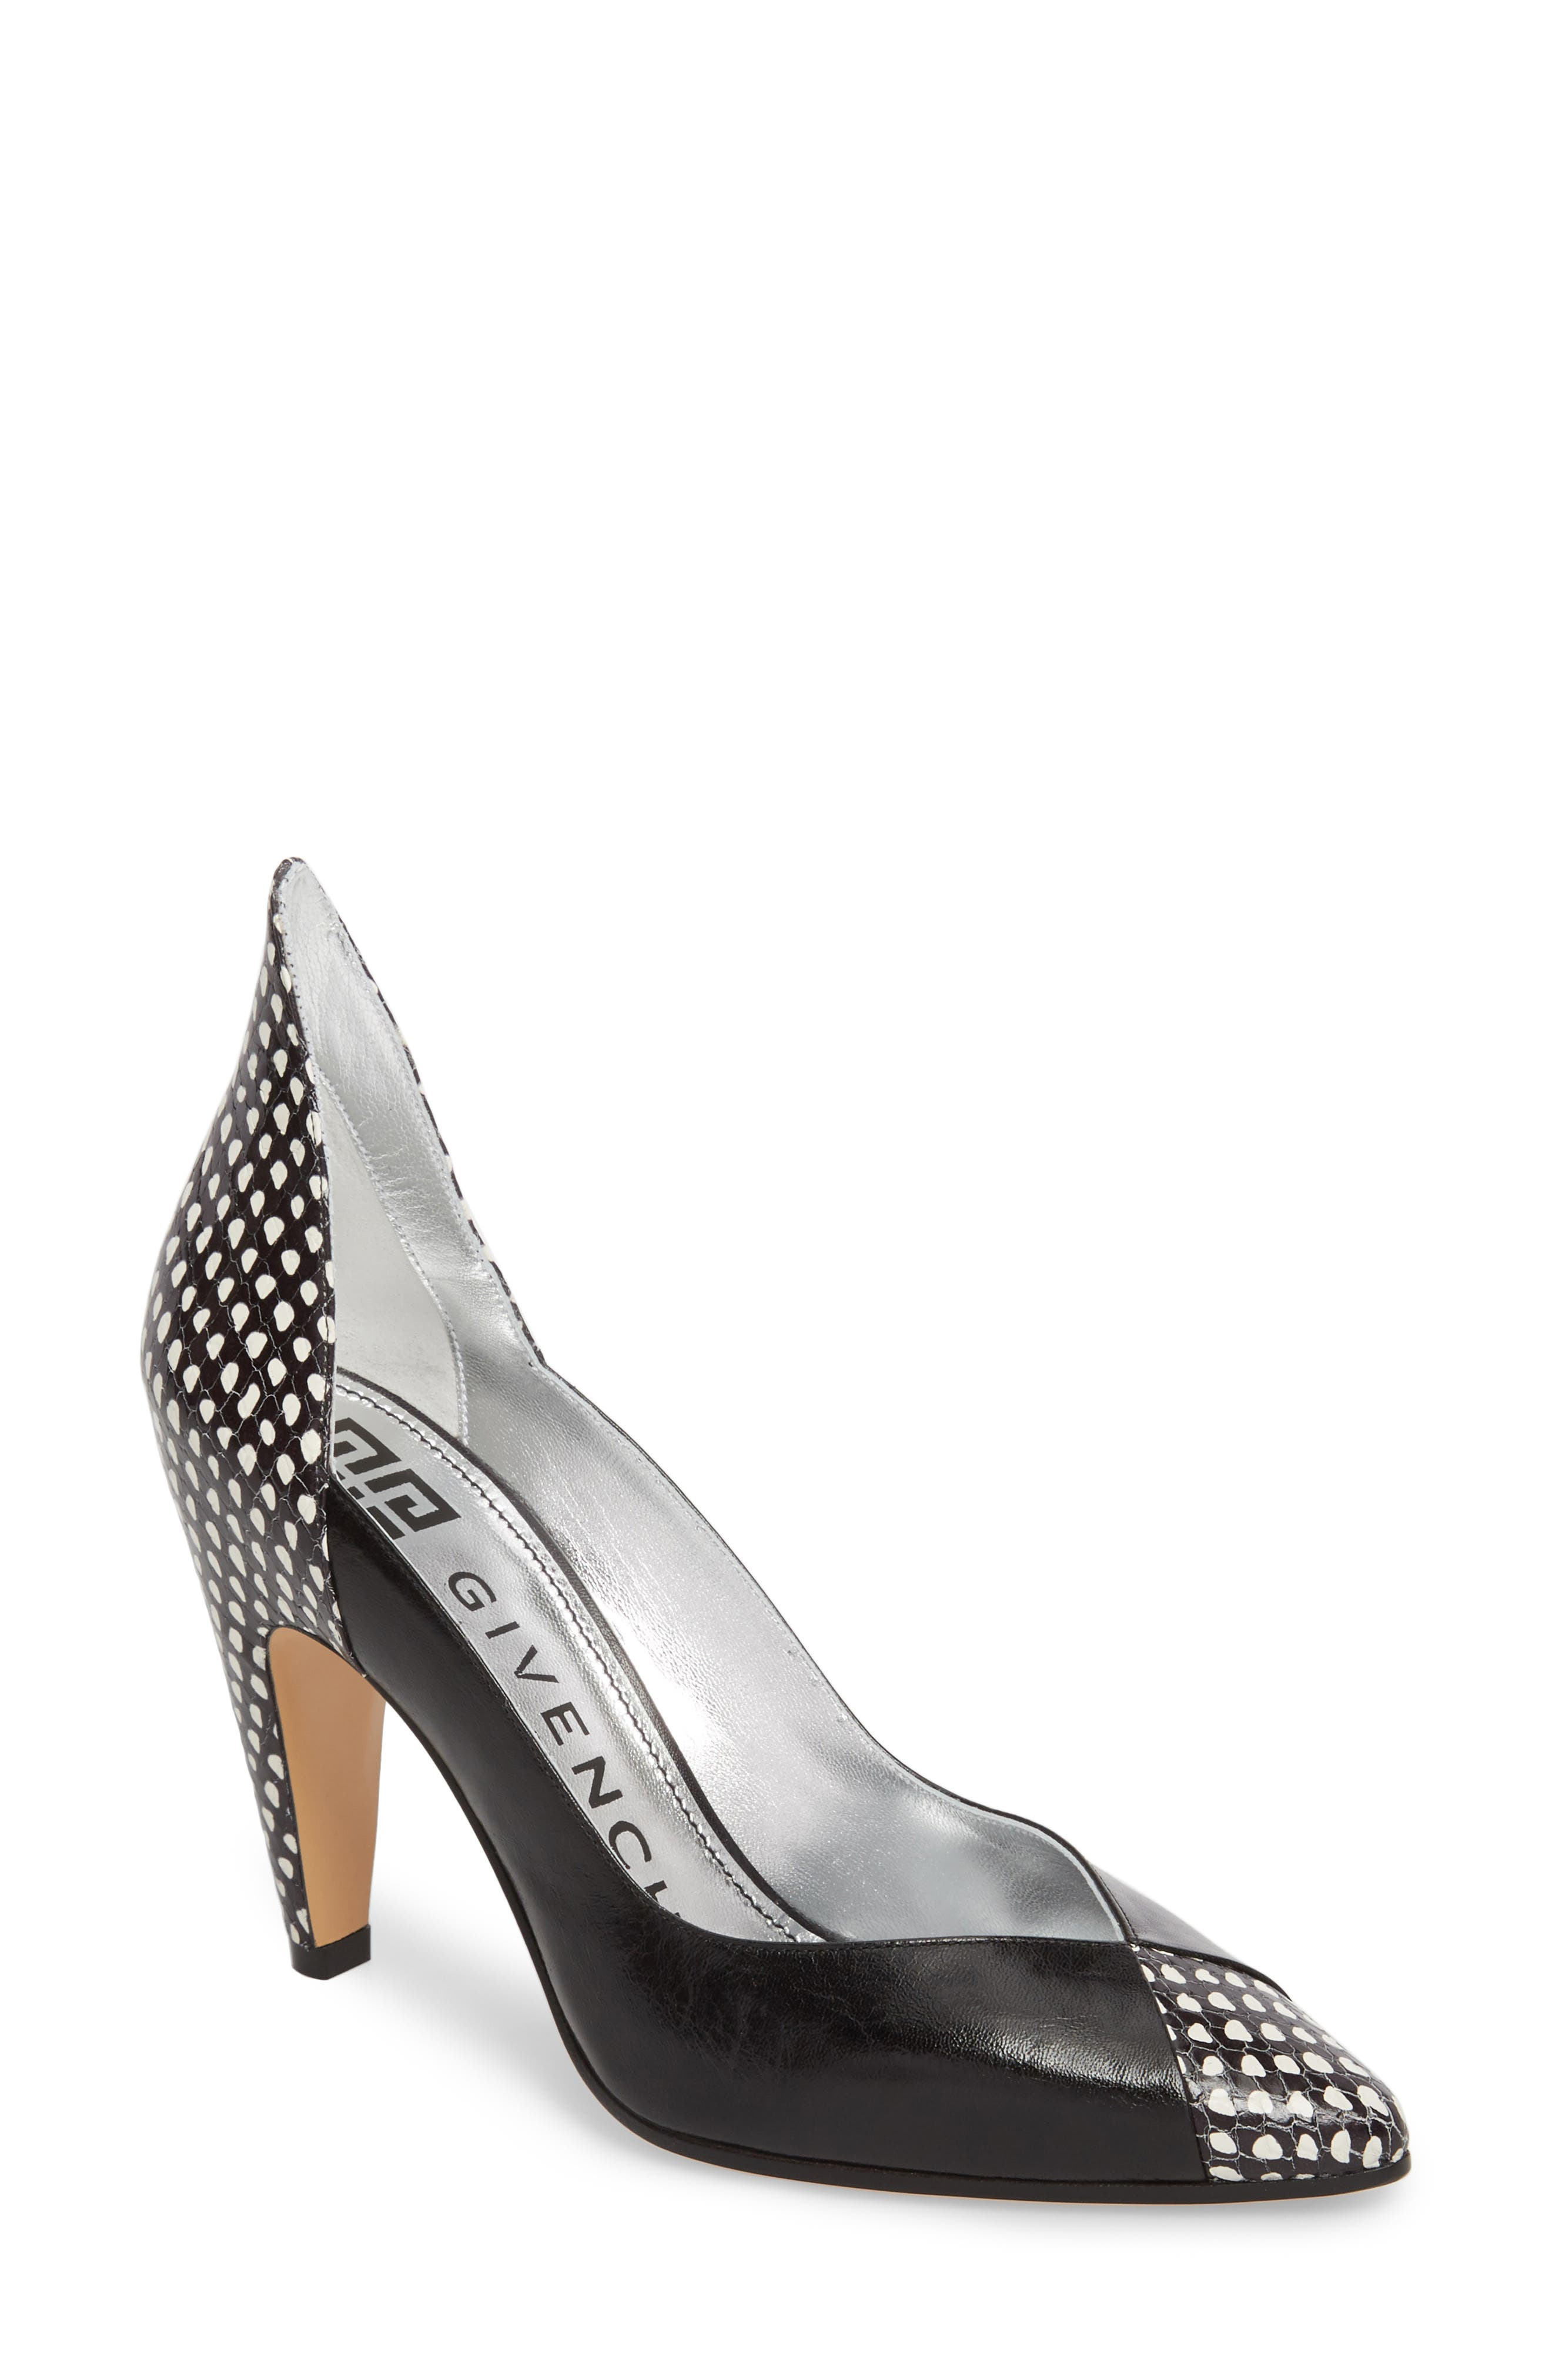 Kangaroo Leather Pointy Toe Pump,                         Main,                         color, Black/ White